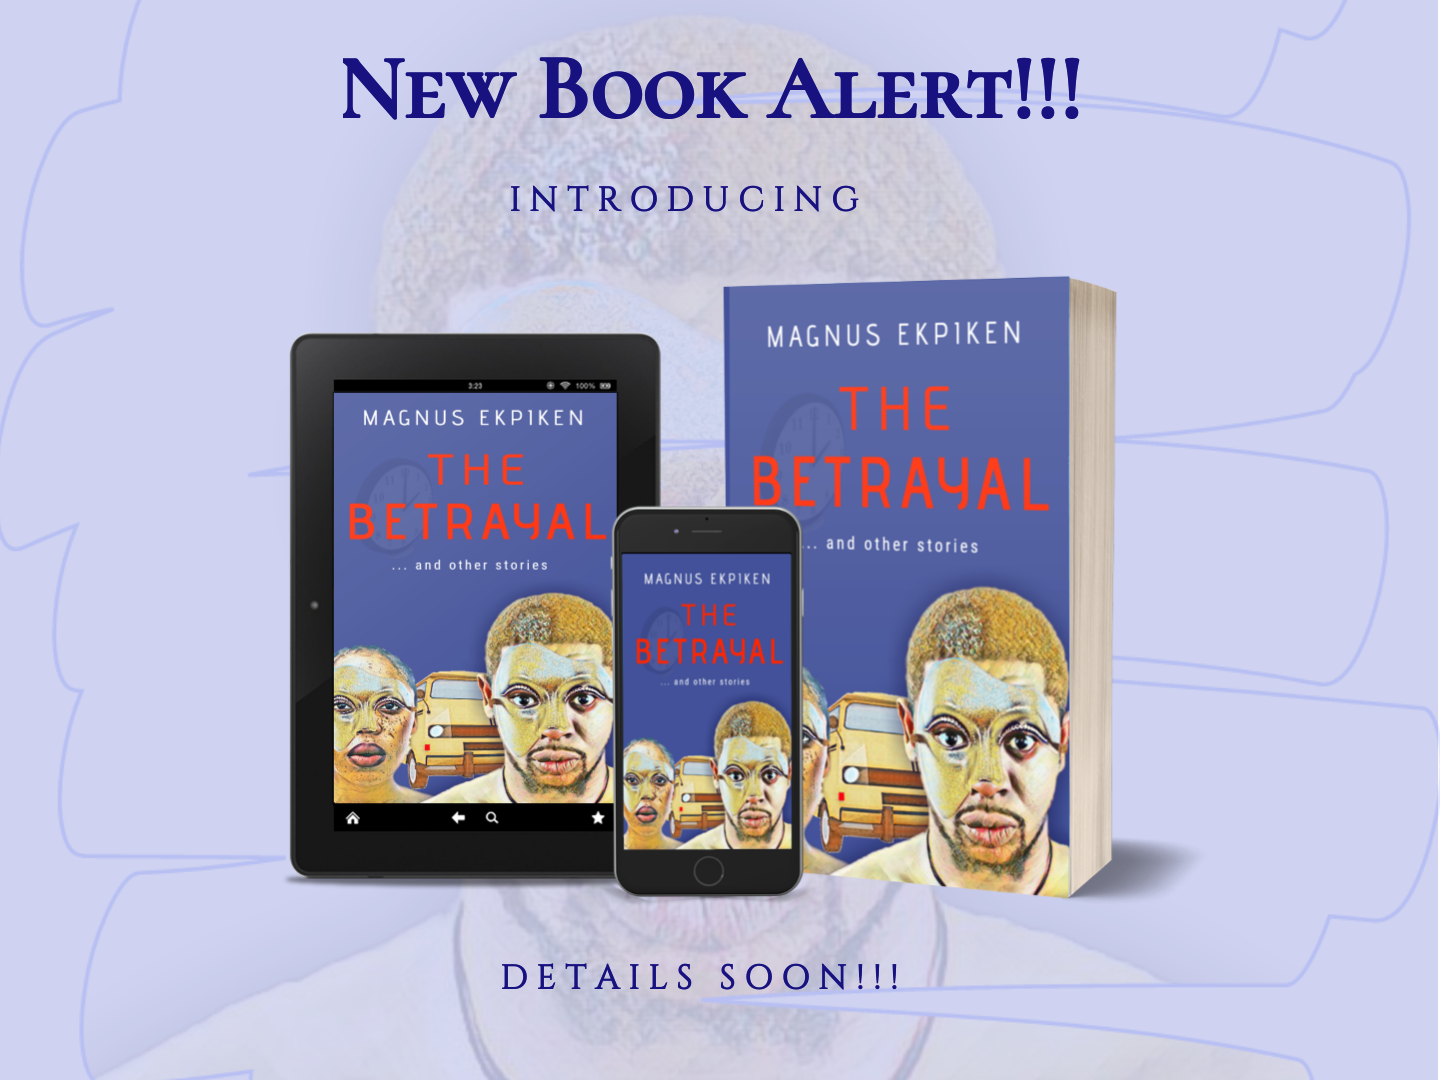 New Book Alert: Introducing The Betrayal by Magnus Ekpiken